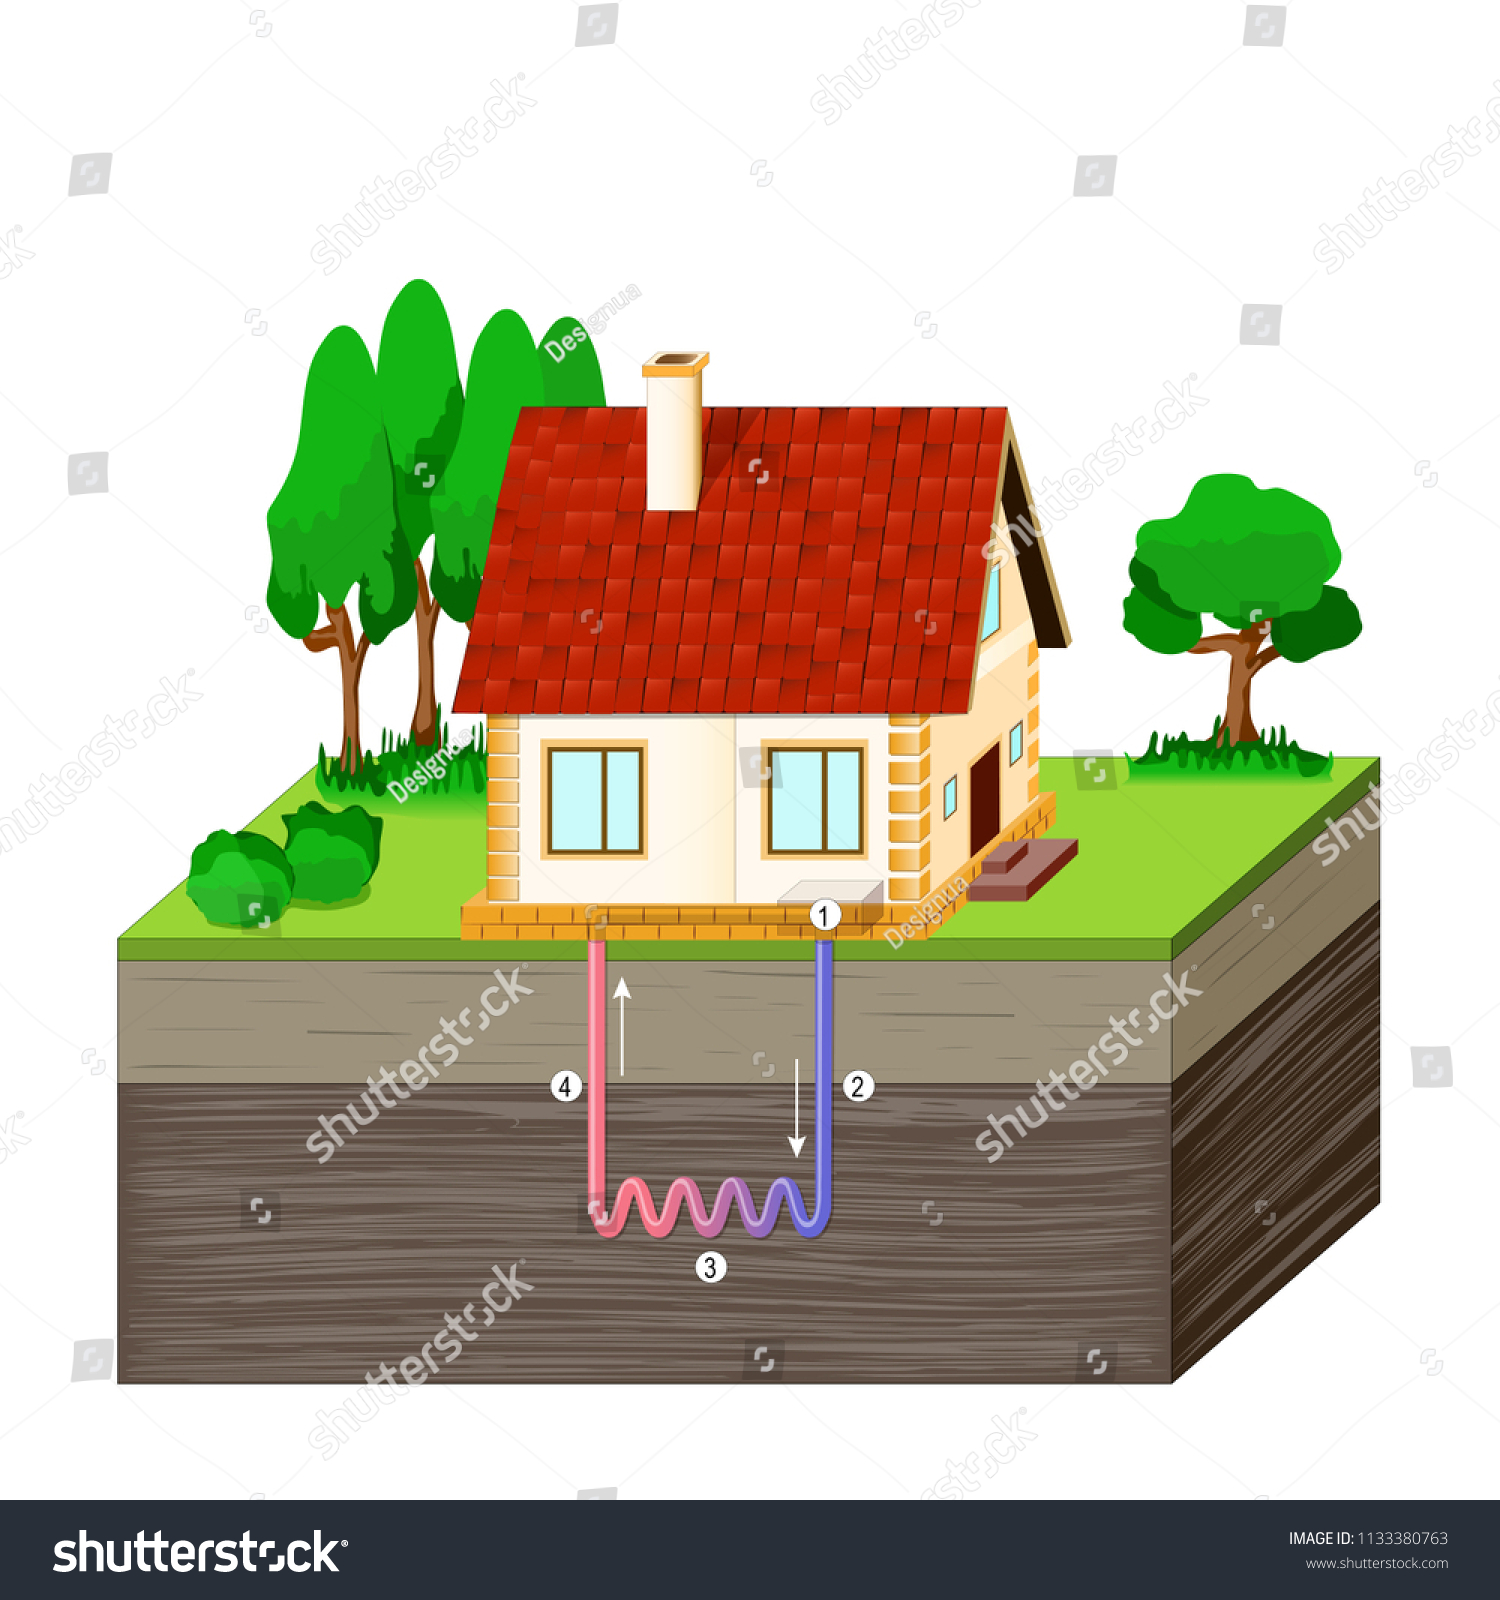 Diagram House Receiving Geothermal Energy Heat Stock Vector Royalty Wiring Diagrams Of A Pump Or Cooling System Illustration